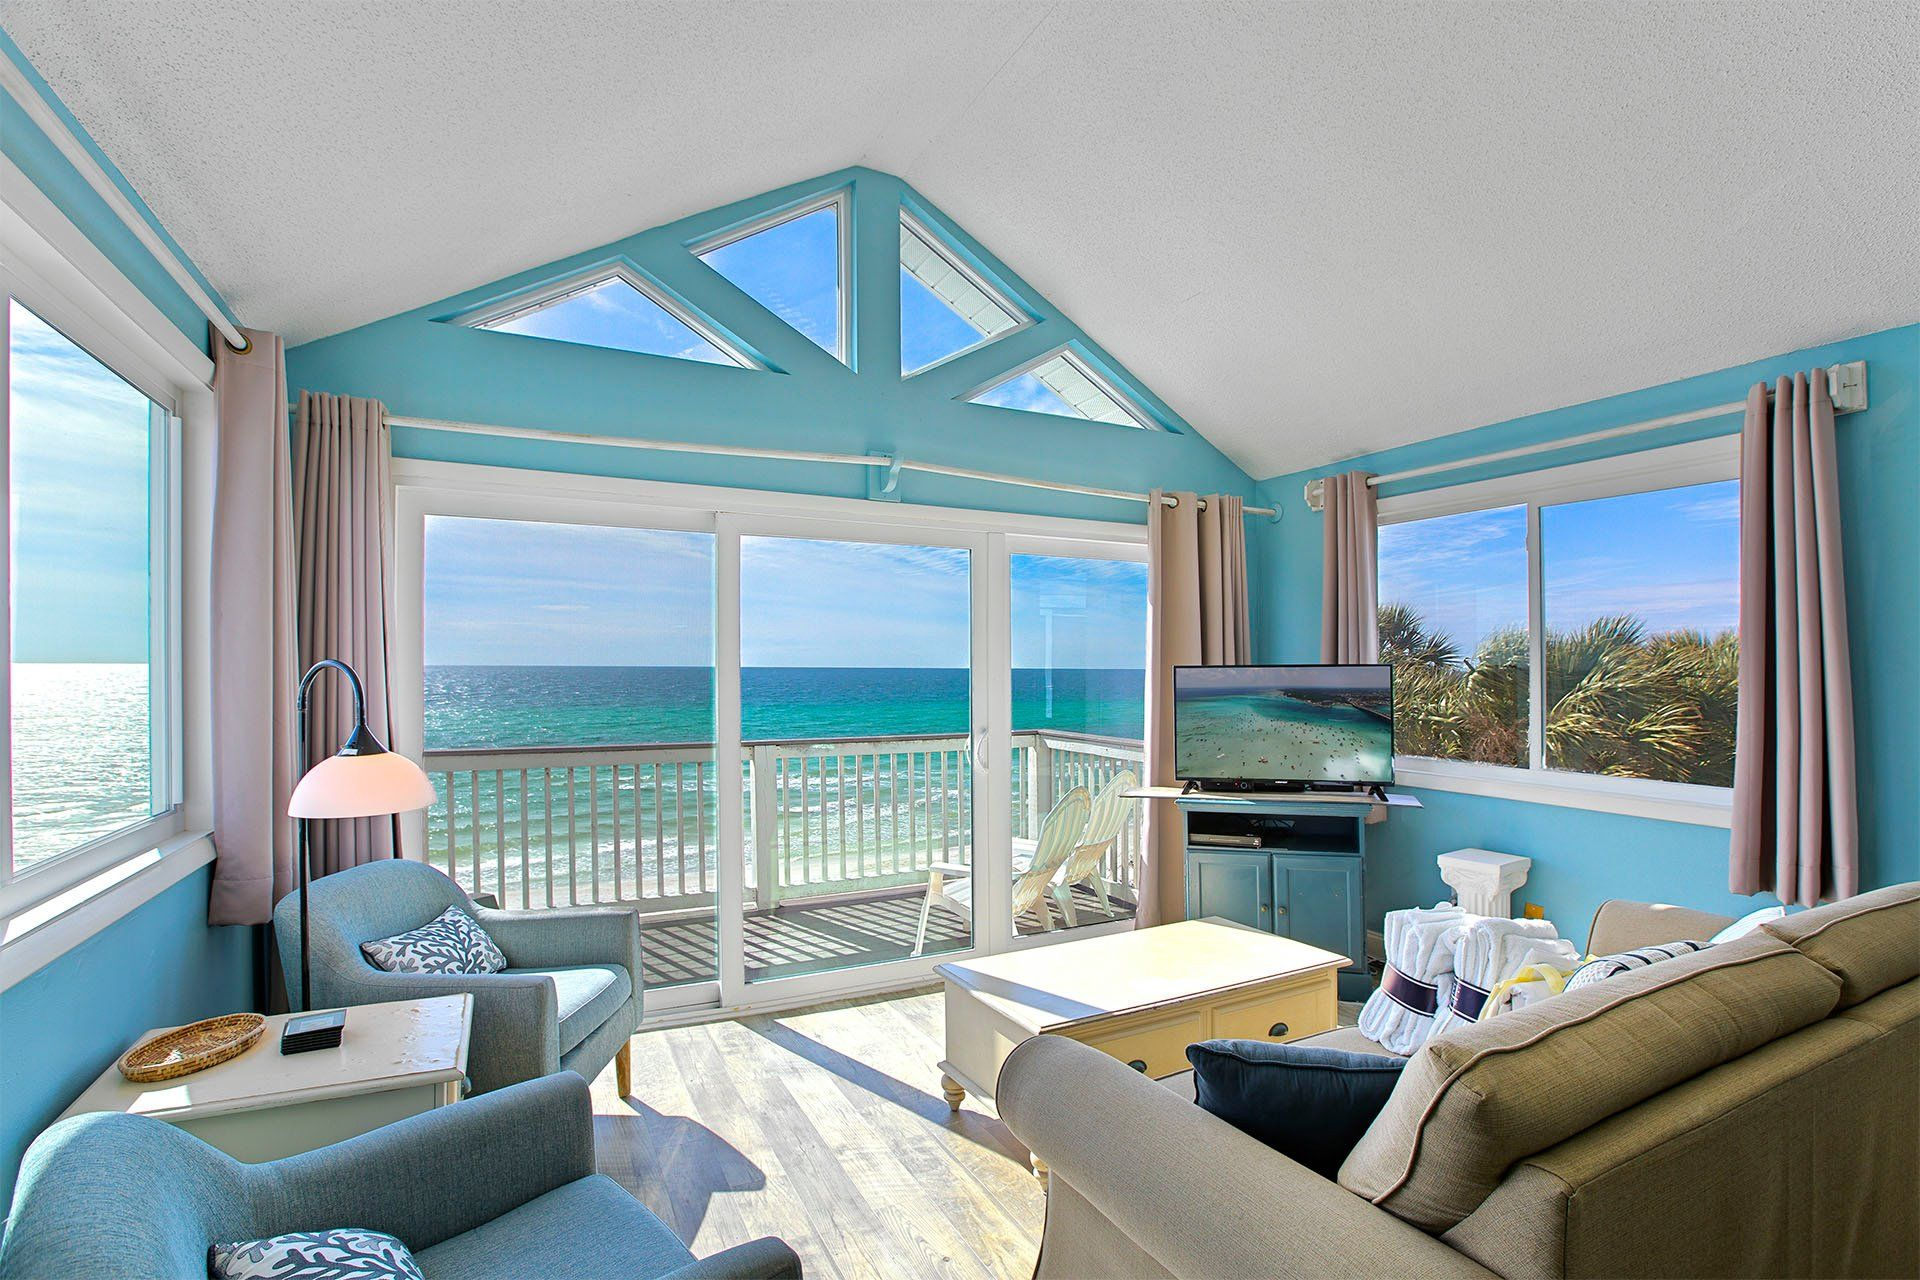 Ramsgate 8 Is A Rare Affordable Beachfront Condo Rental Located On